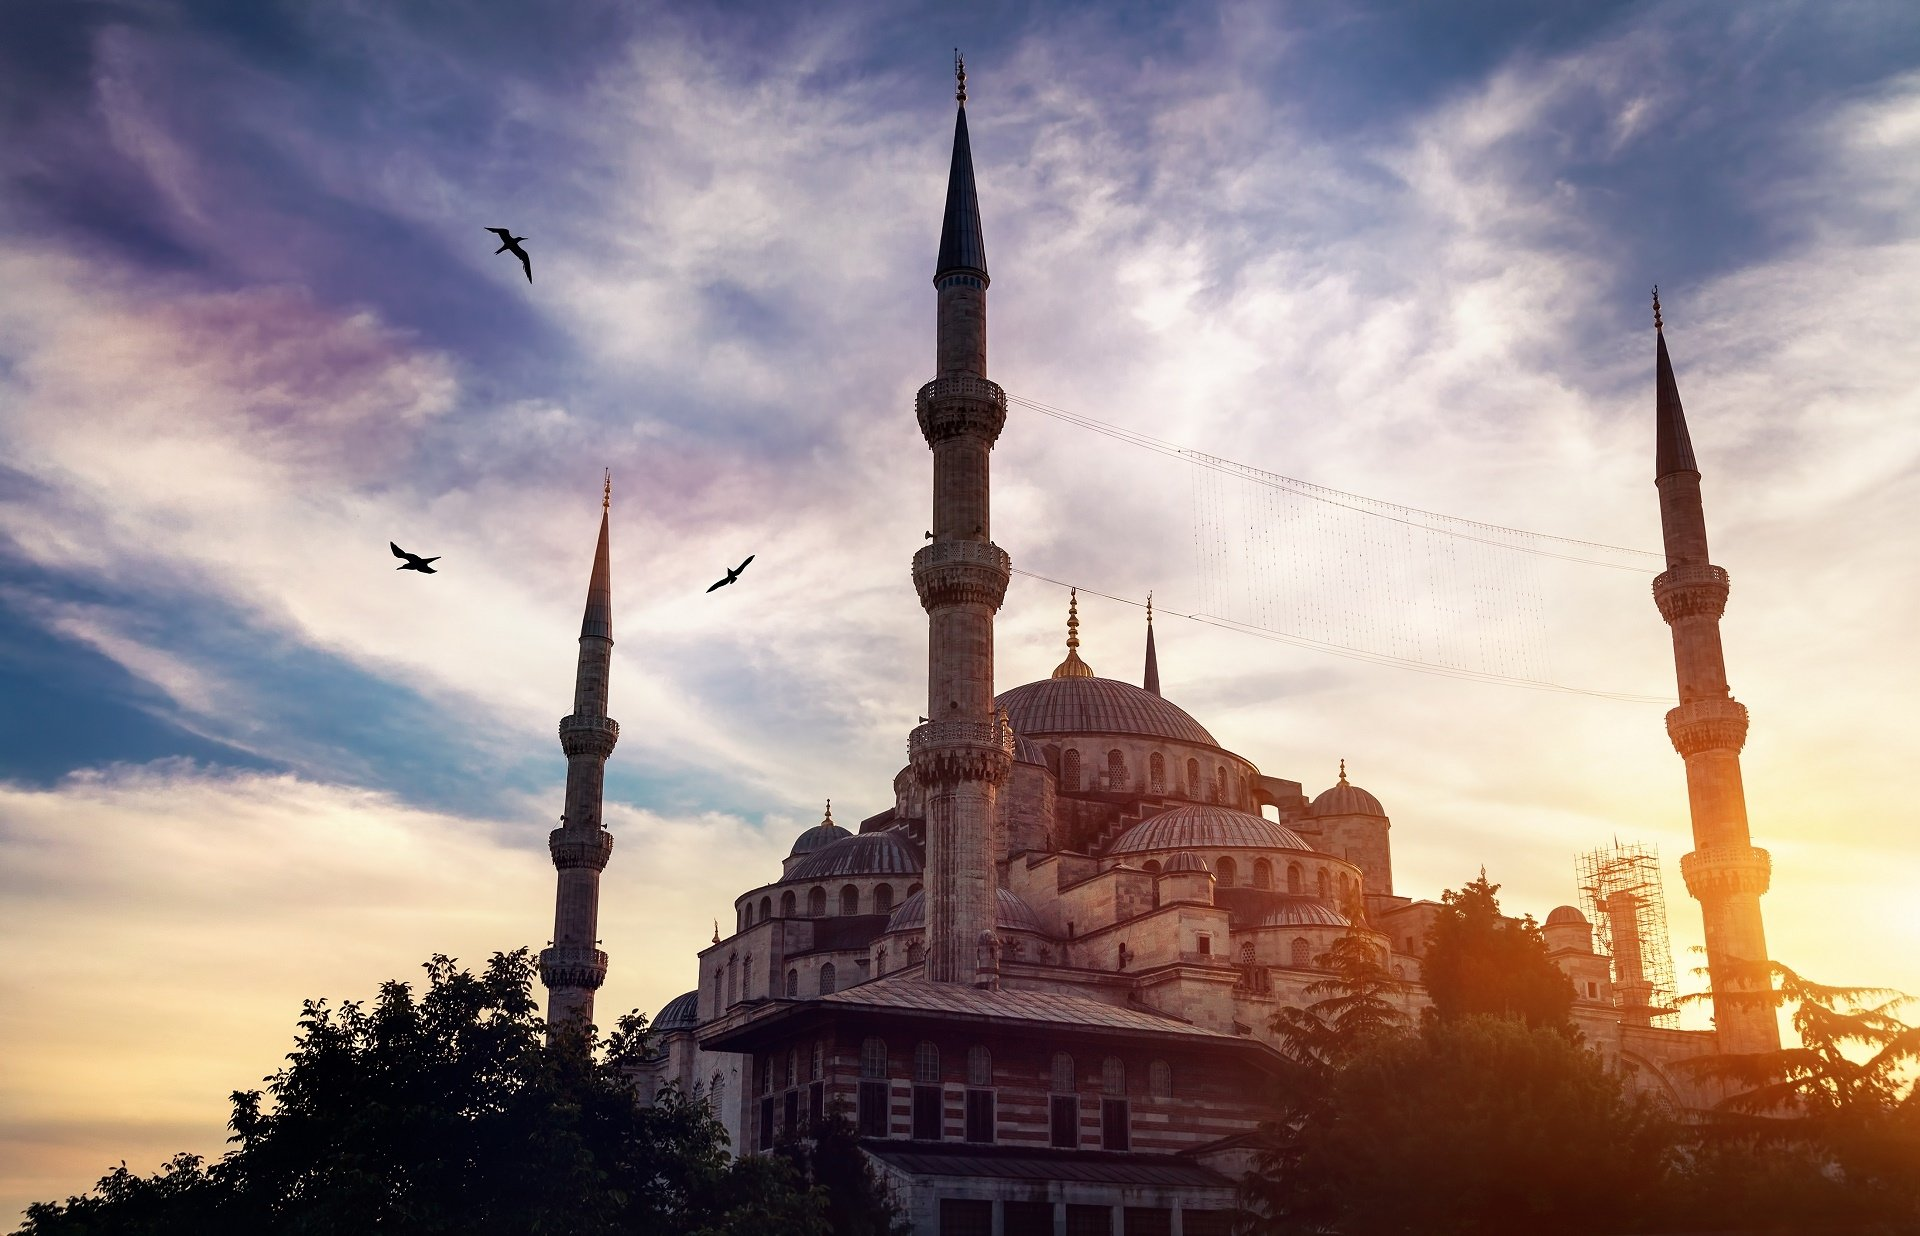 Hd Wallpaper Sultan Ahmed Mosque 775330 Hd Wallpaper